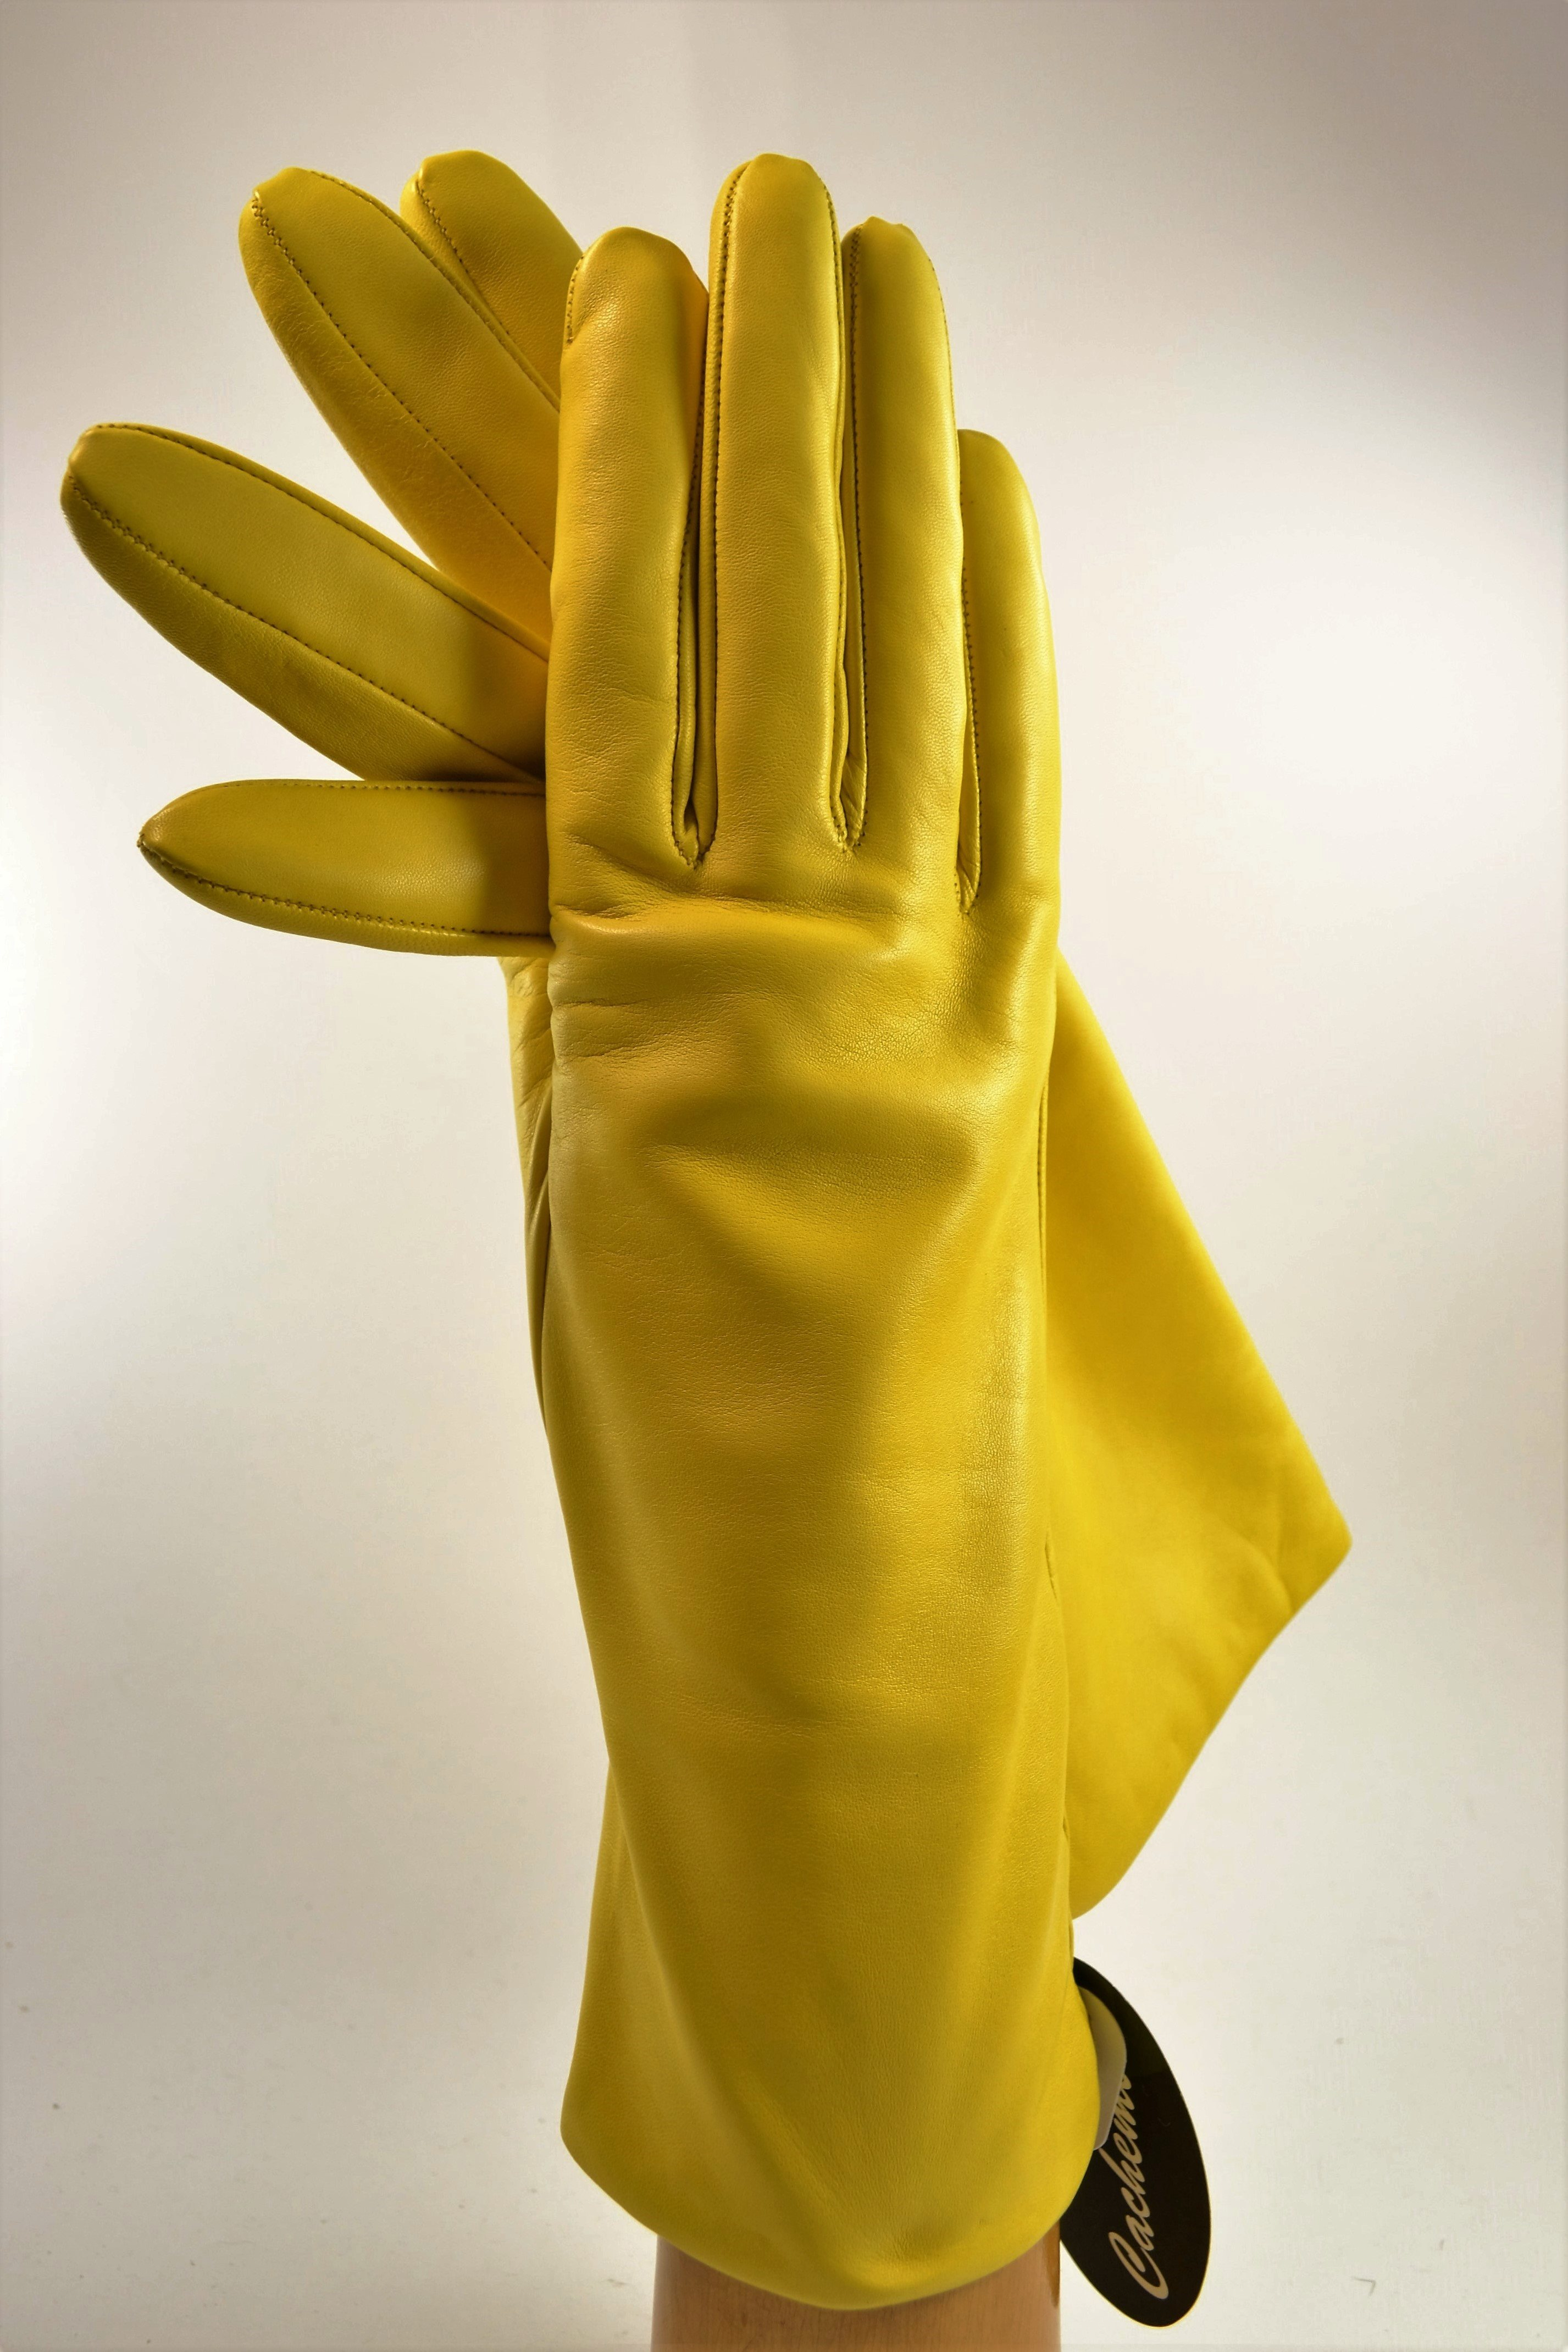 "ladies nappa gloves 3"", cashmere lined, yellow"